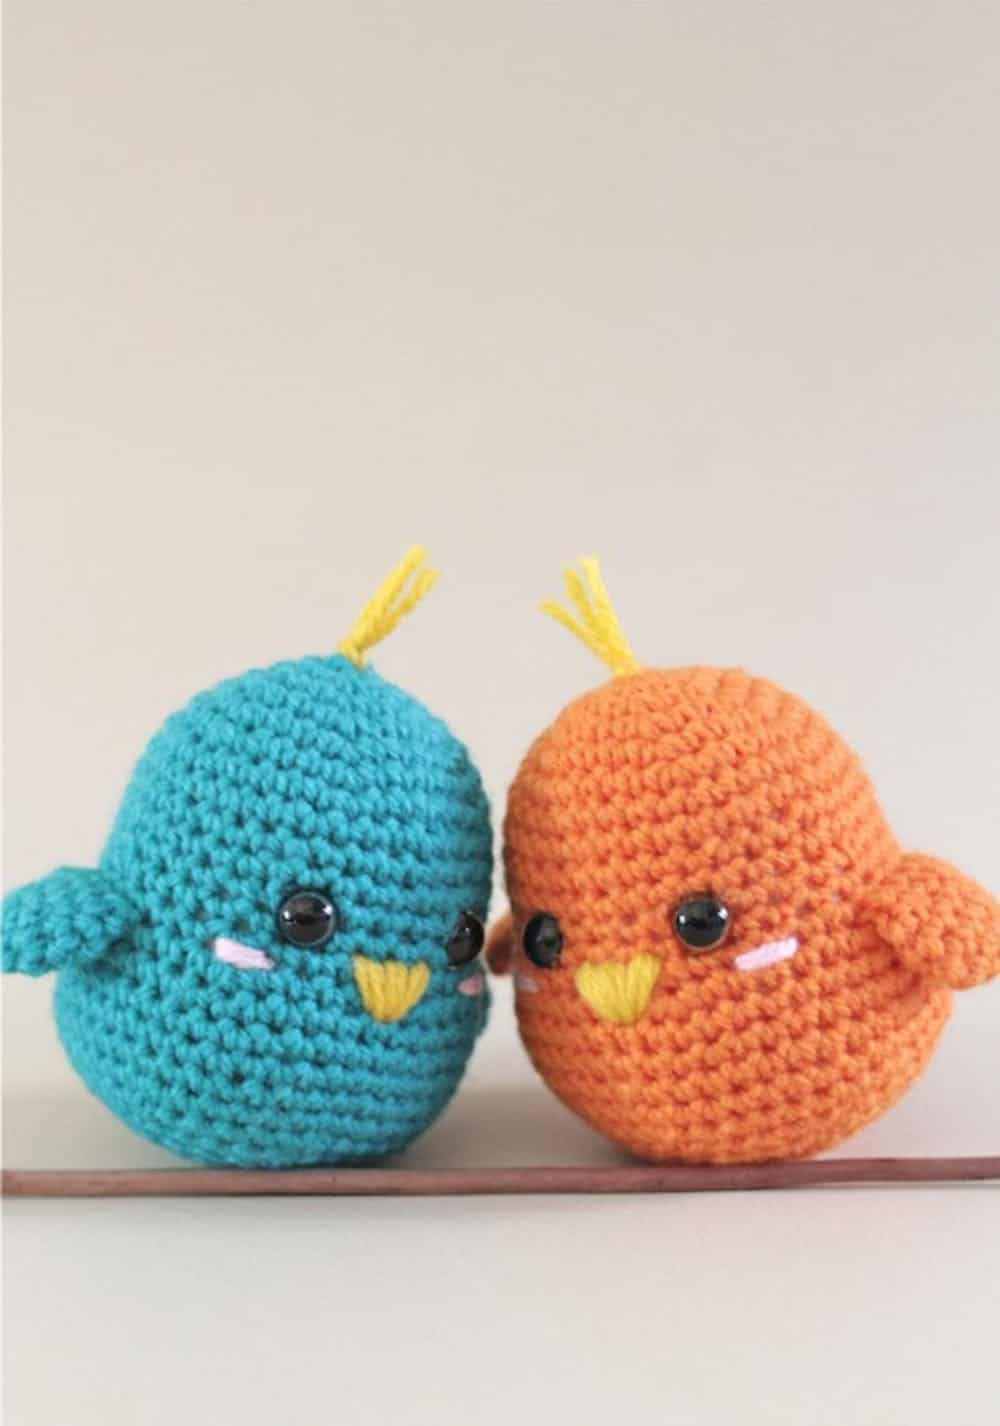 Diy crochet lovebirds